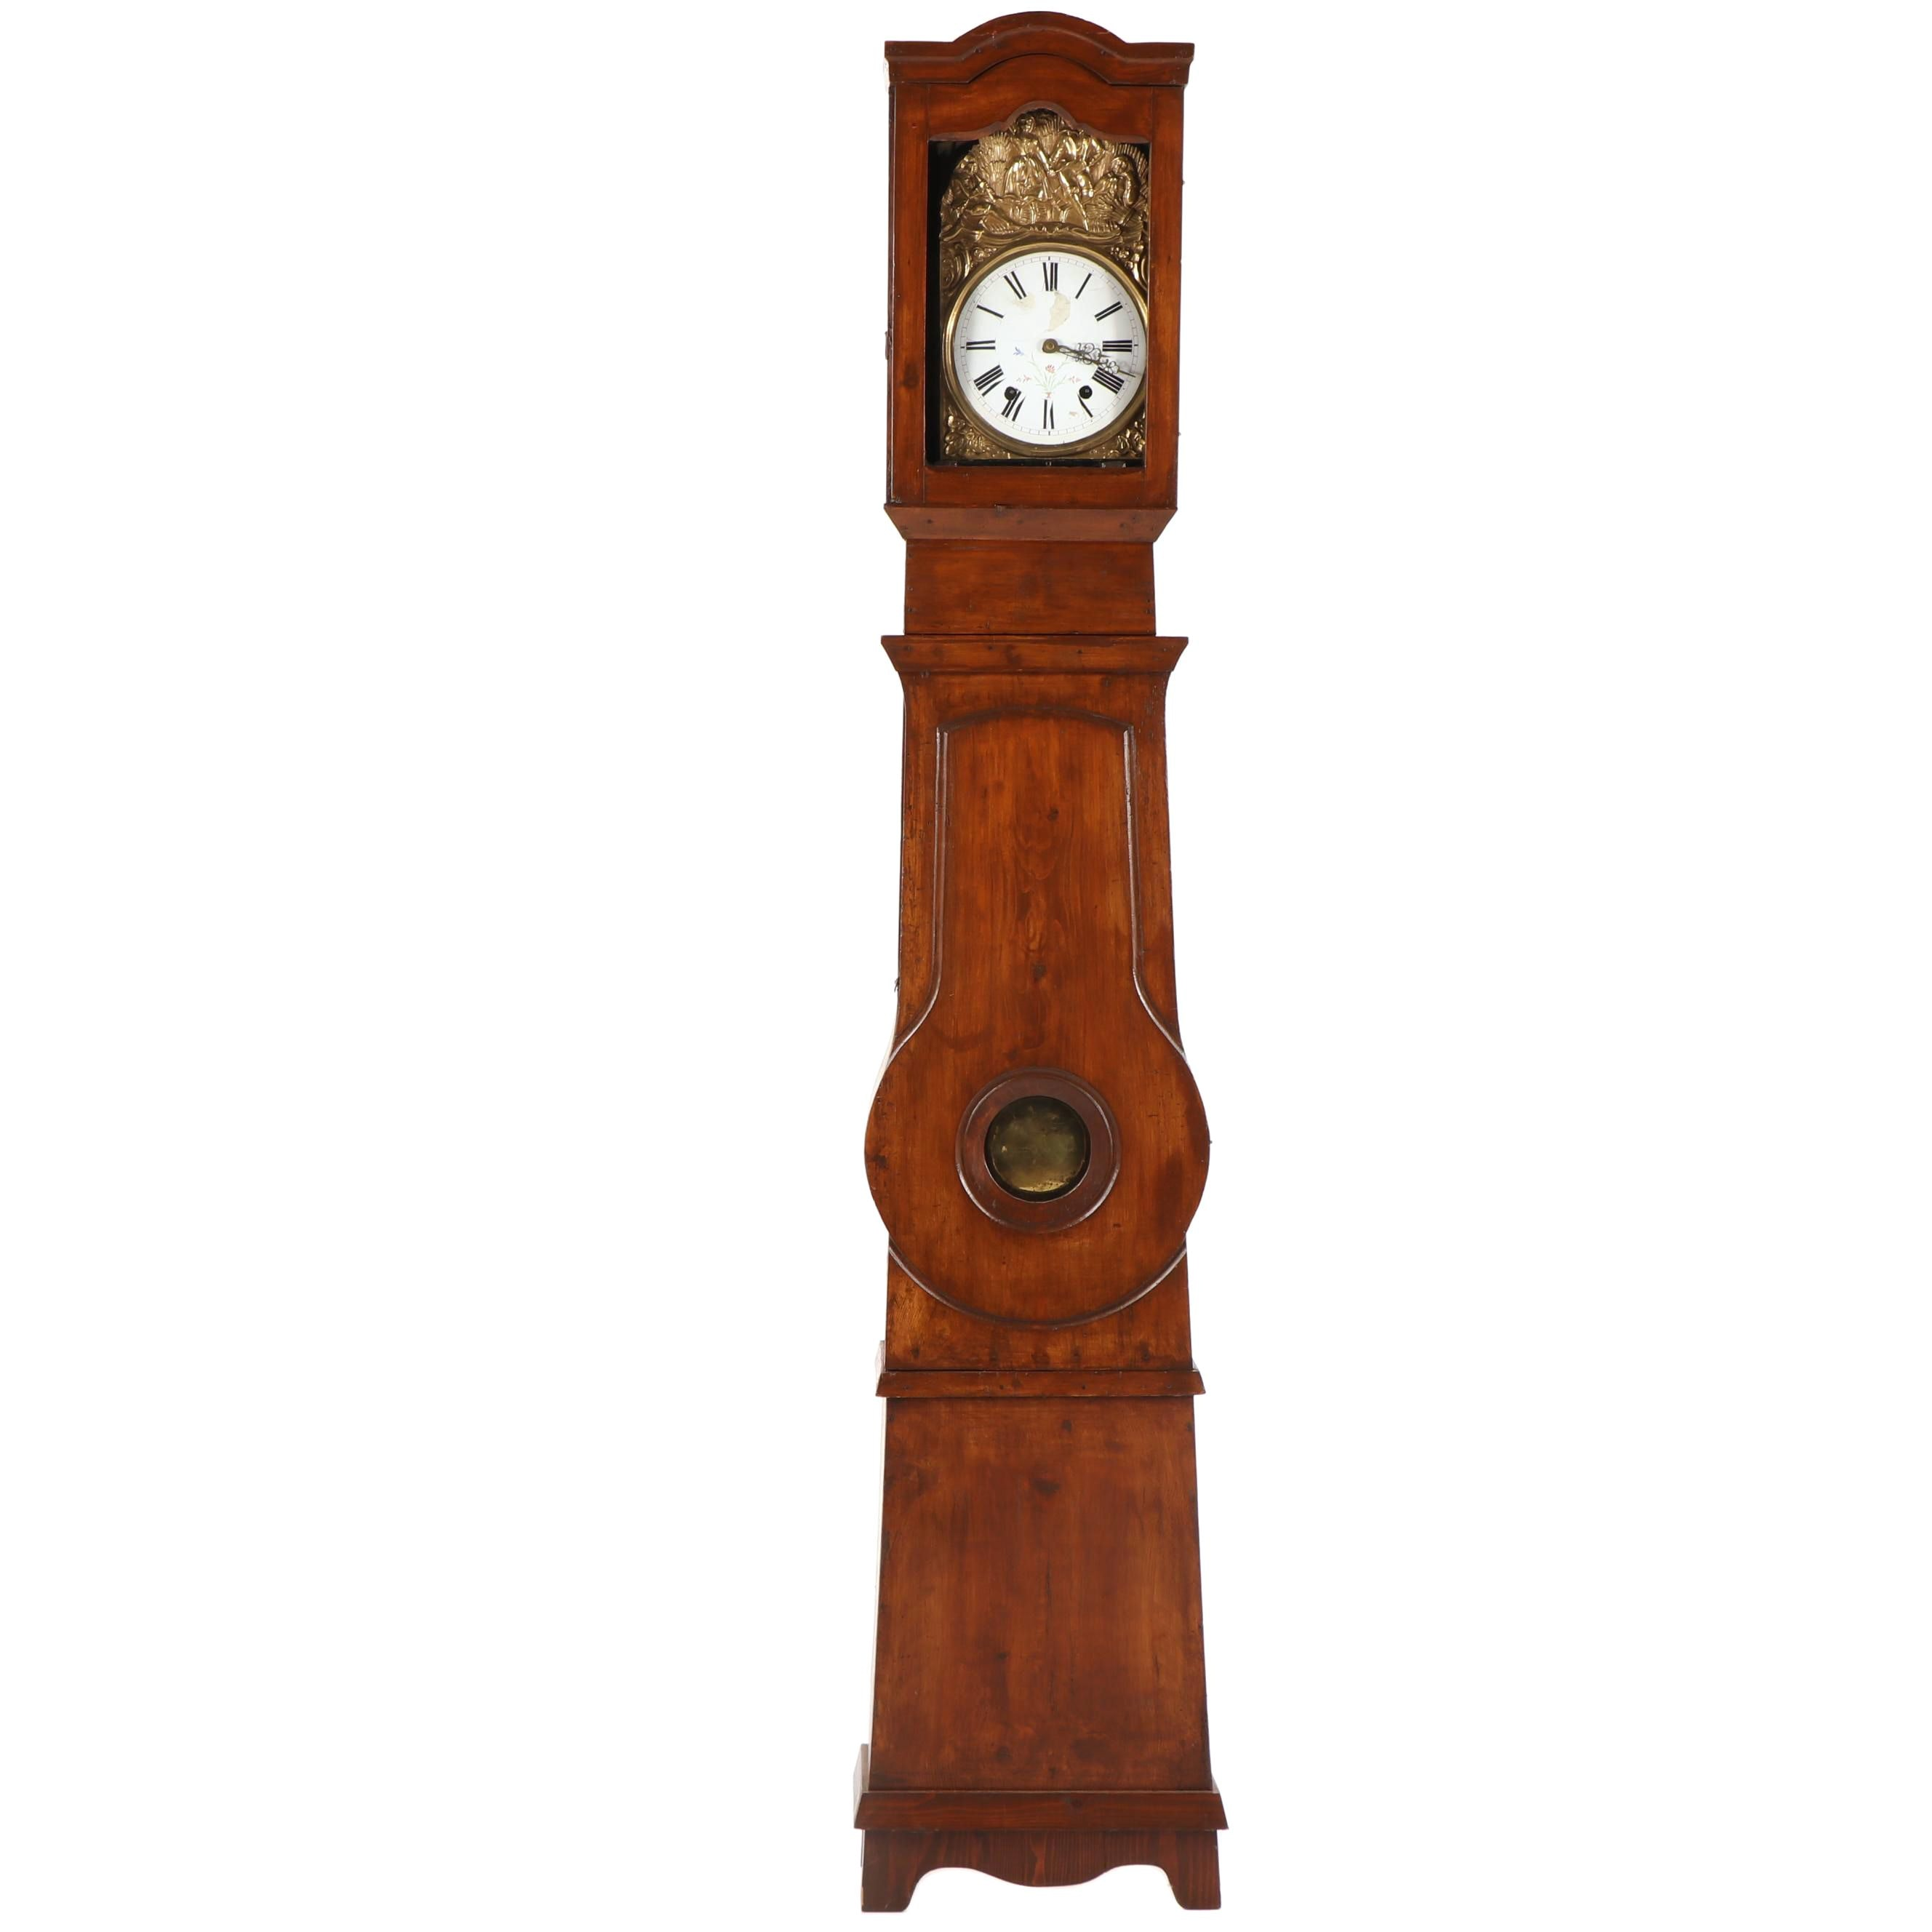 19th Century French Provincial Comtoise Tall Case Clock